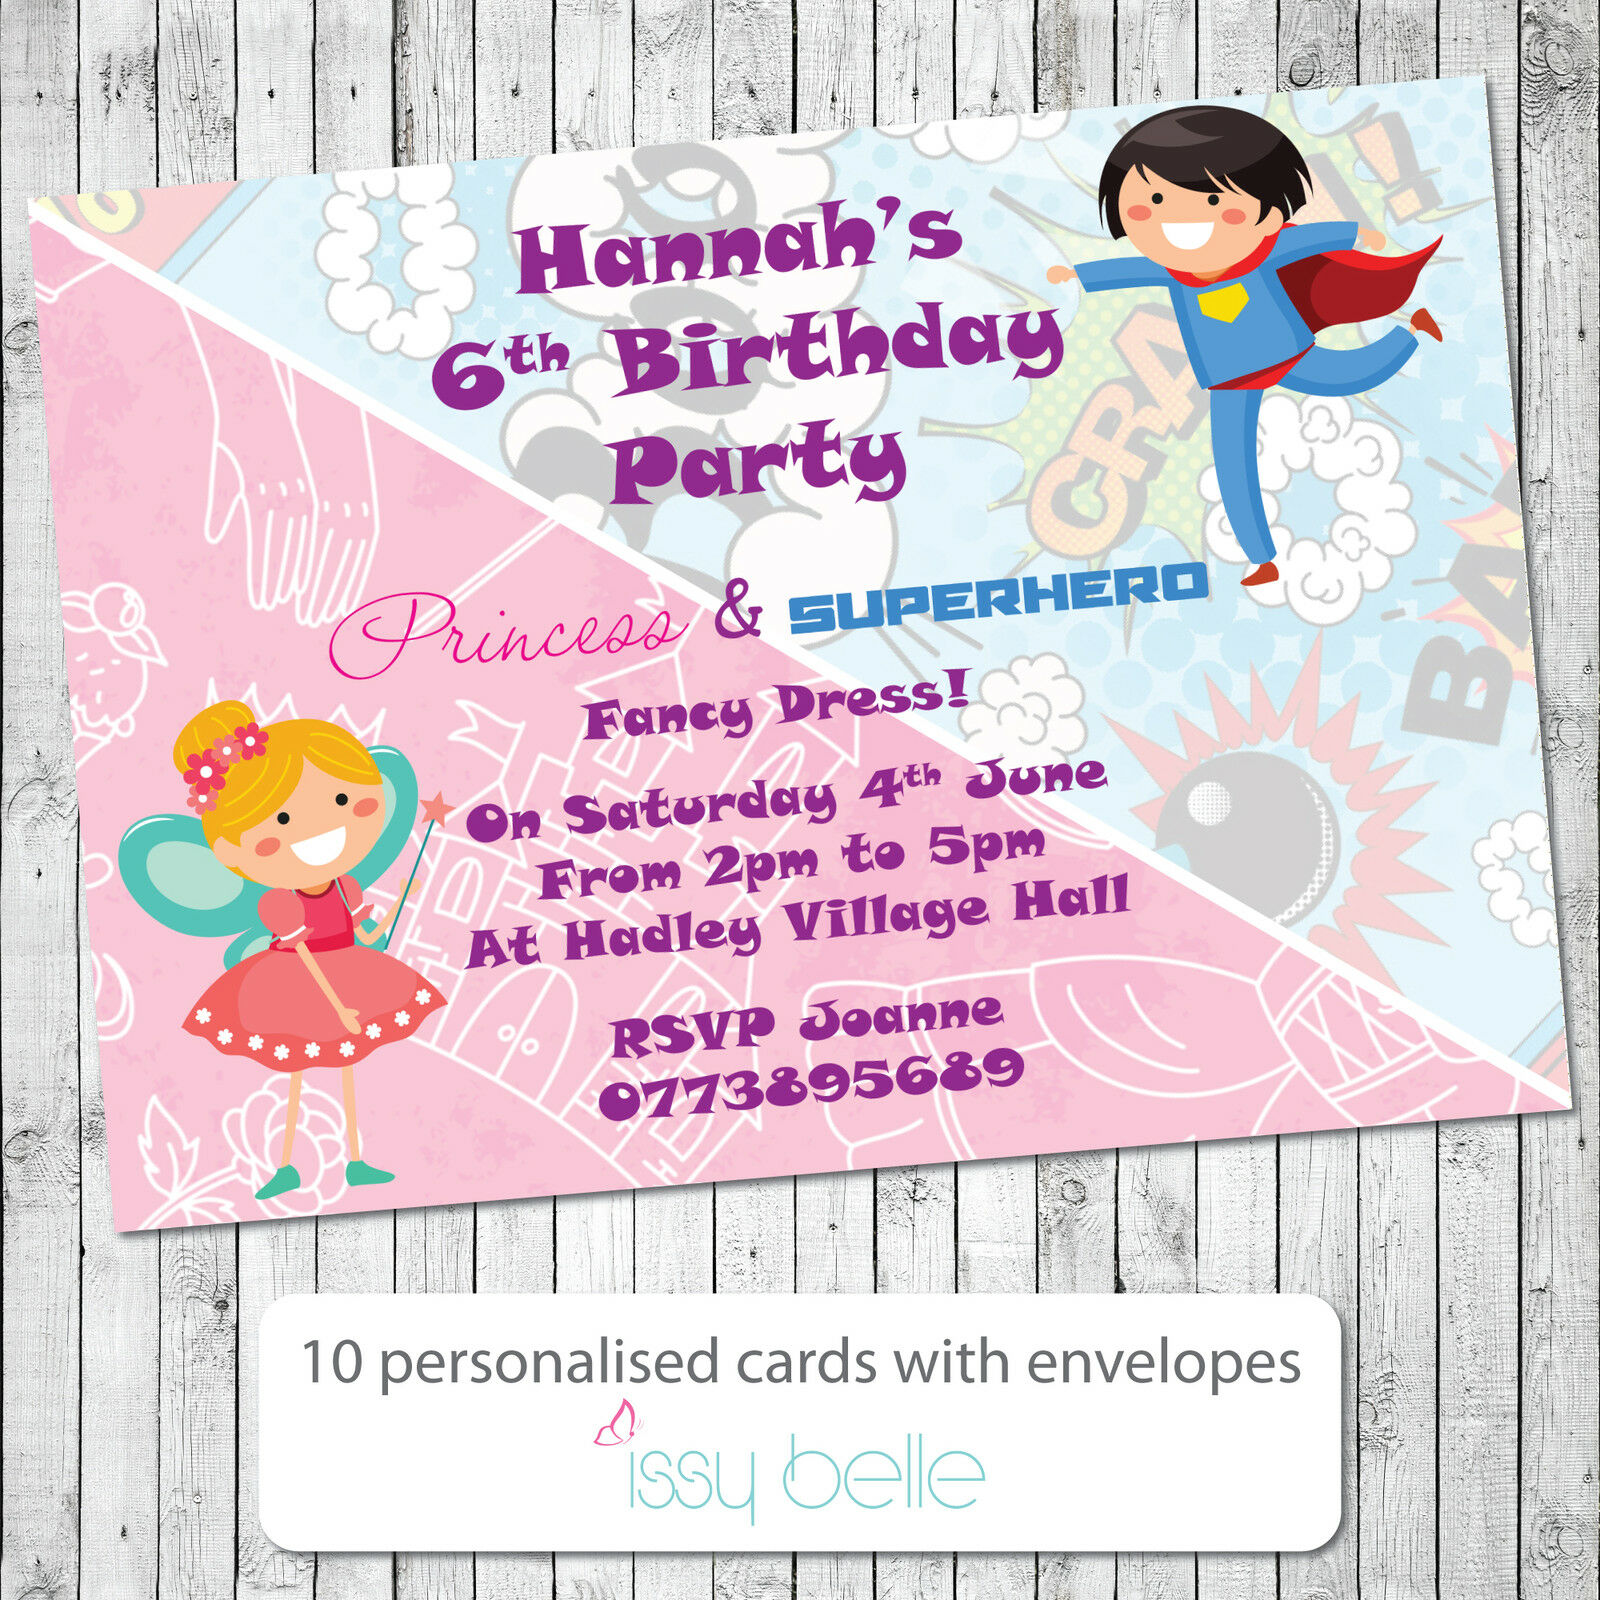 Personalised Birthday Party Invitations Boy Girl Princess ...